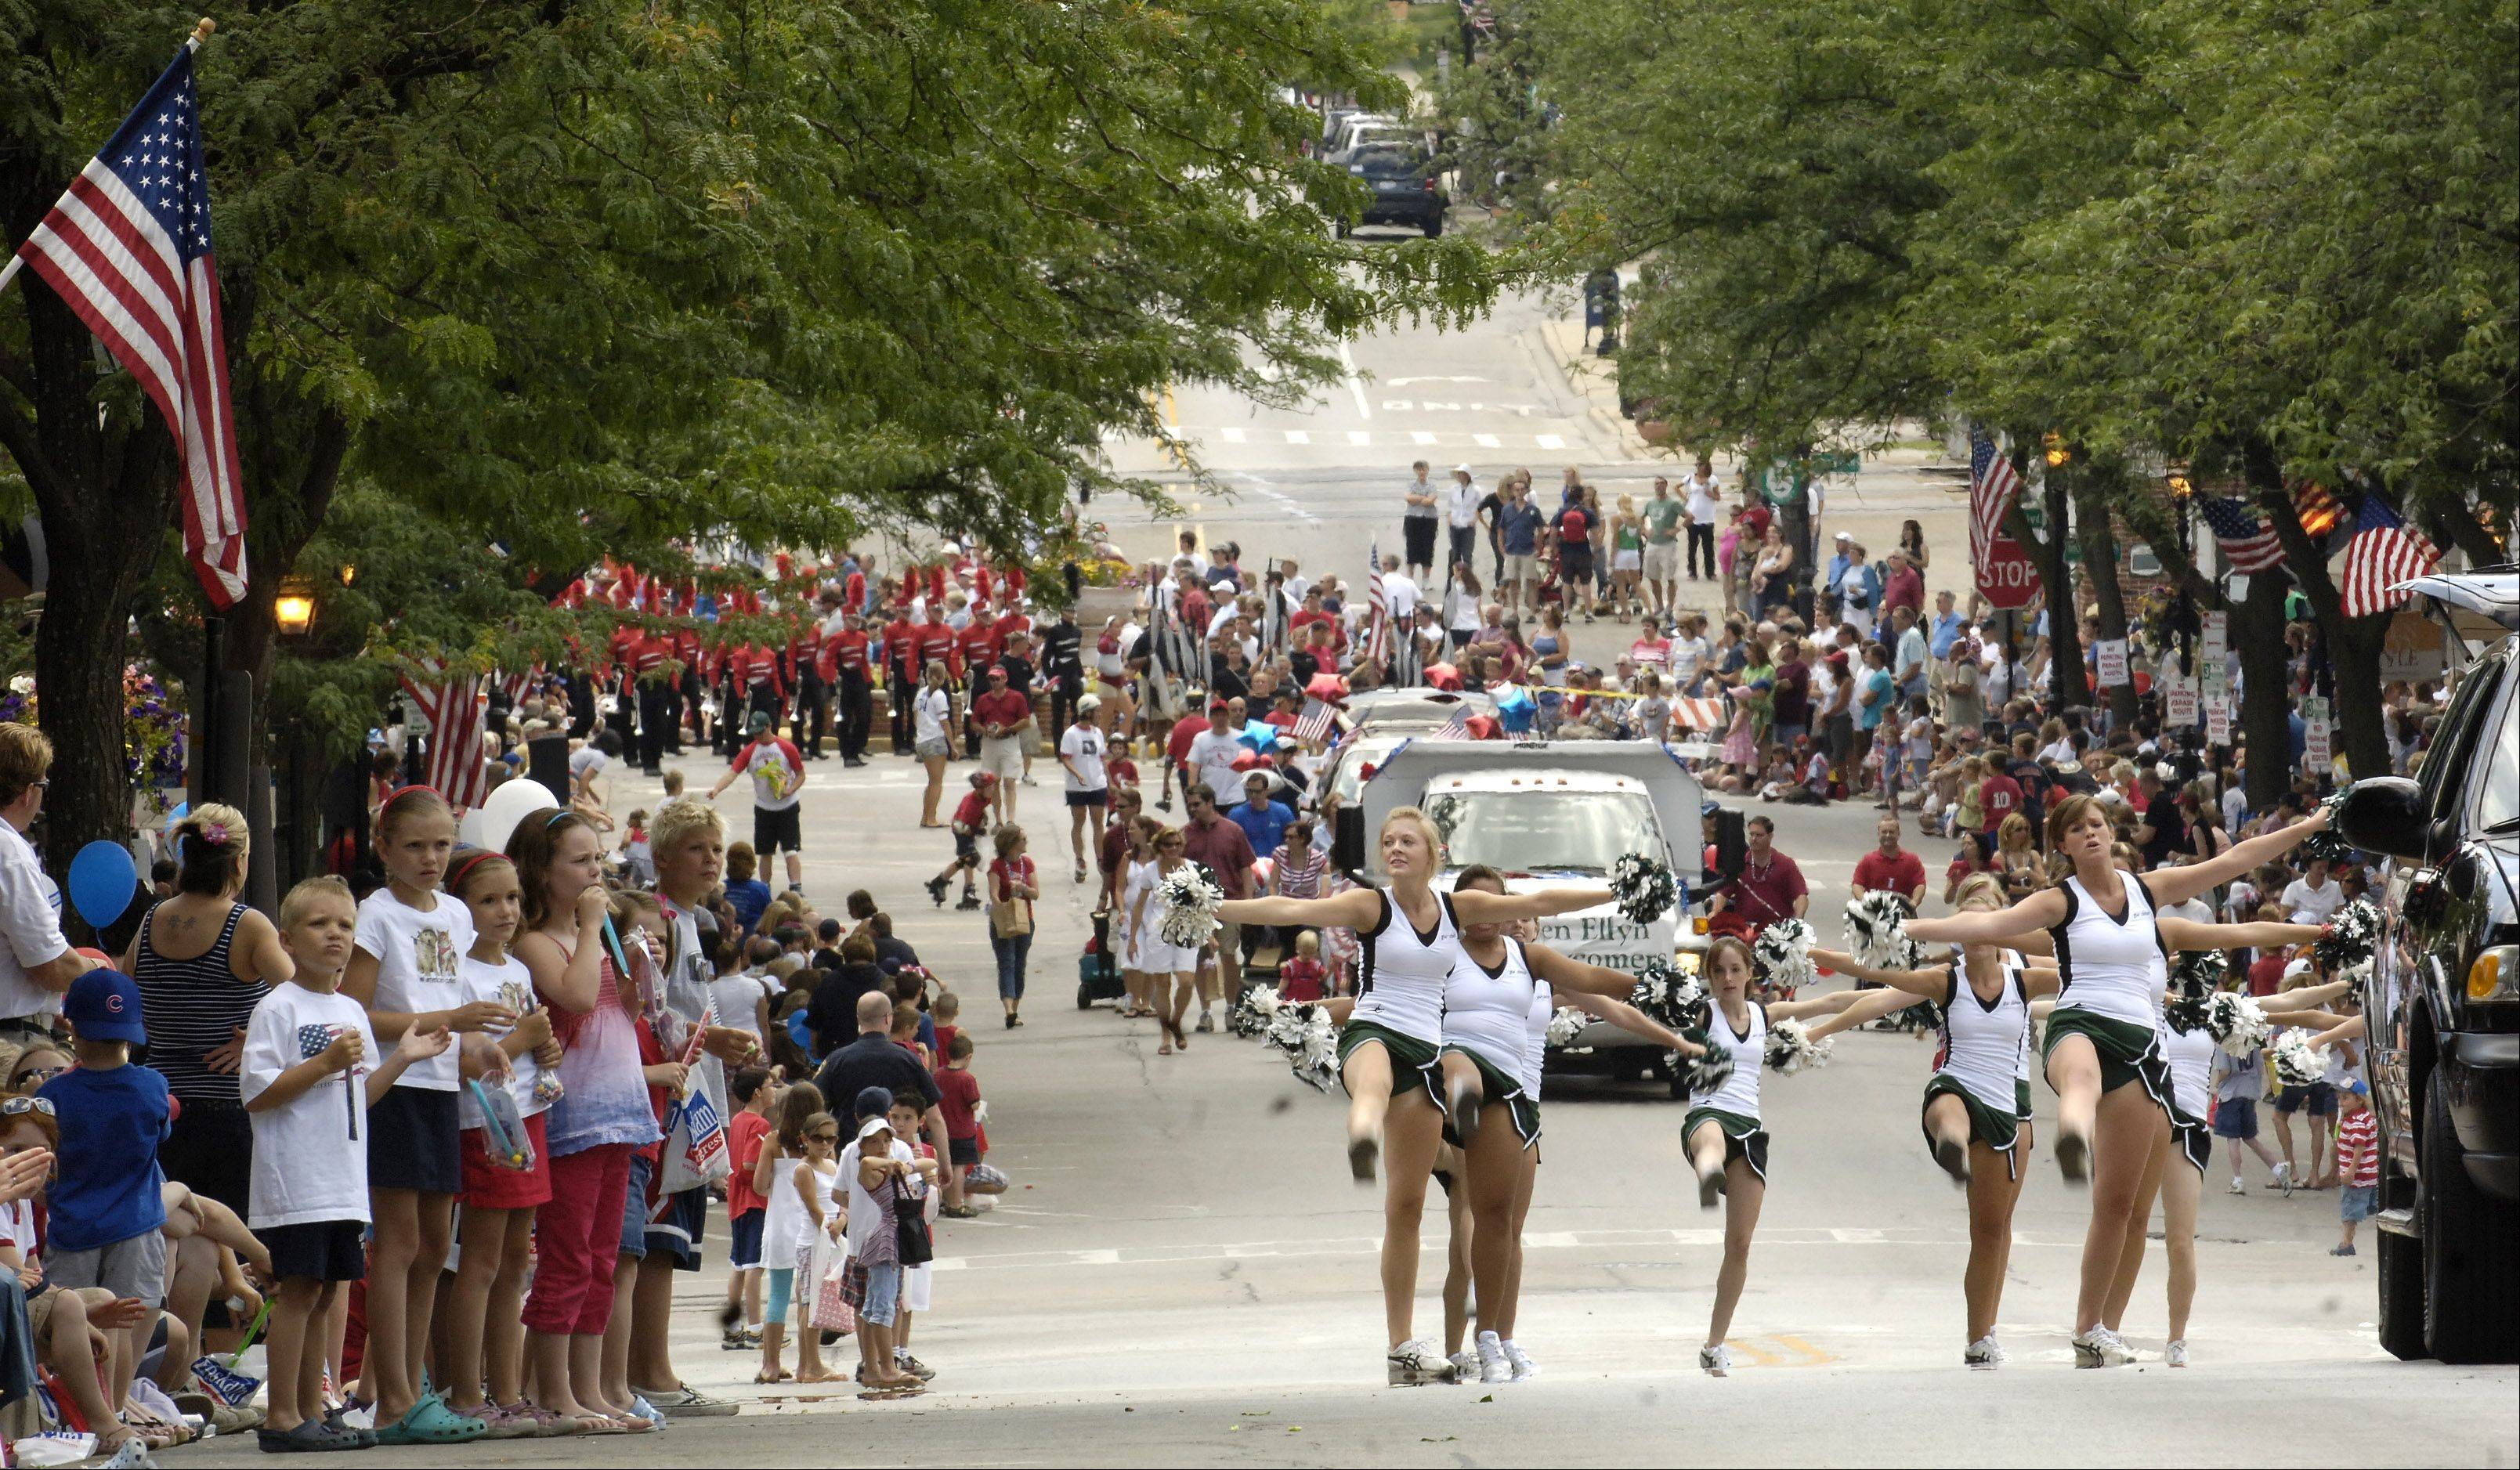 The Glen Ellyn Fourth of July parade will head down Main Street after starting at noon Monday at Glenbard West High School.